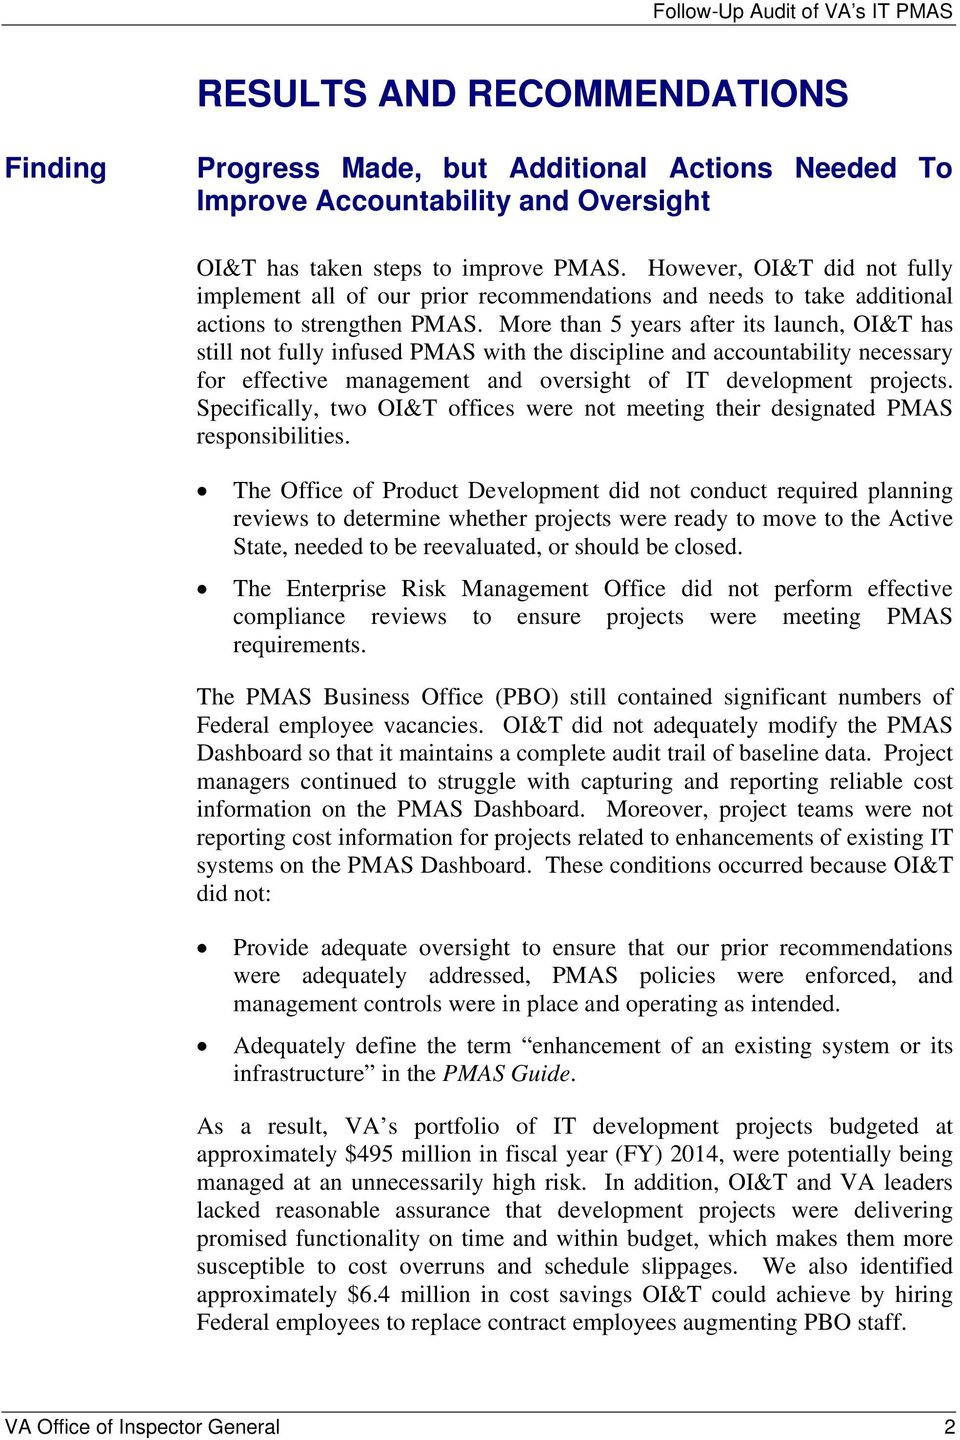 More than 5 years after its launch, OI&T has still not fully infused PMAS with the discipline and accountability necessary for effective management and oversight of IT development projects.